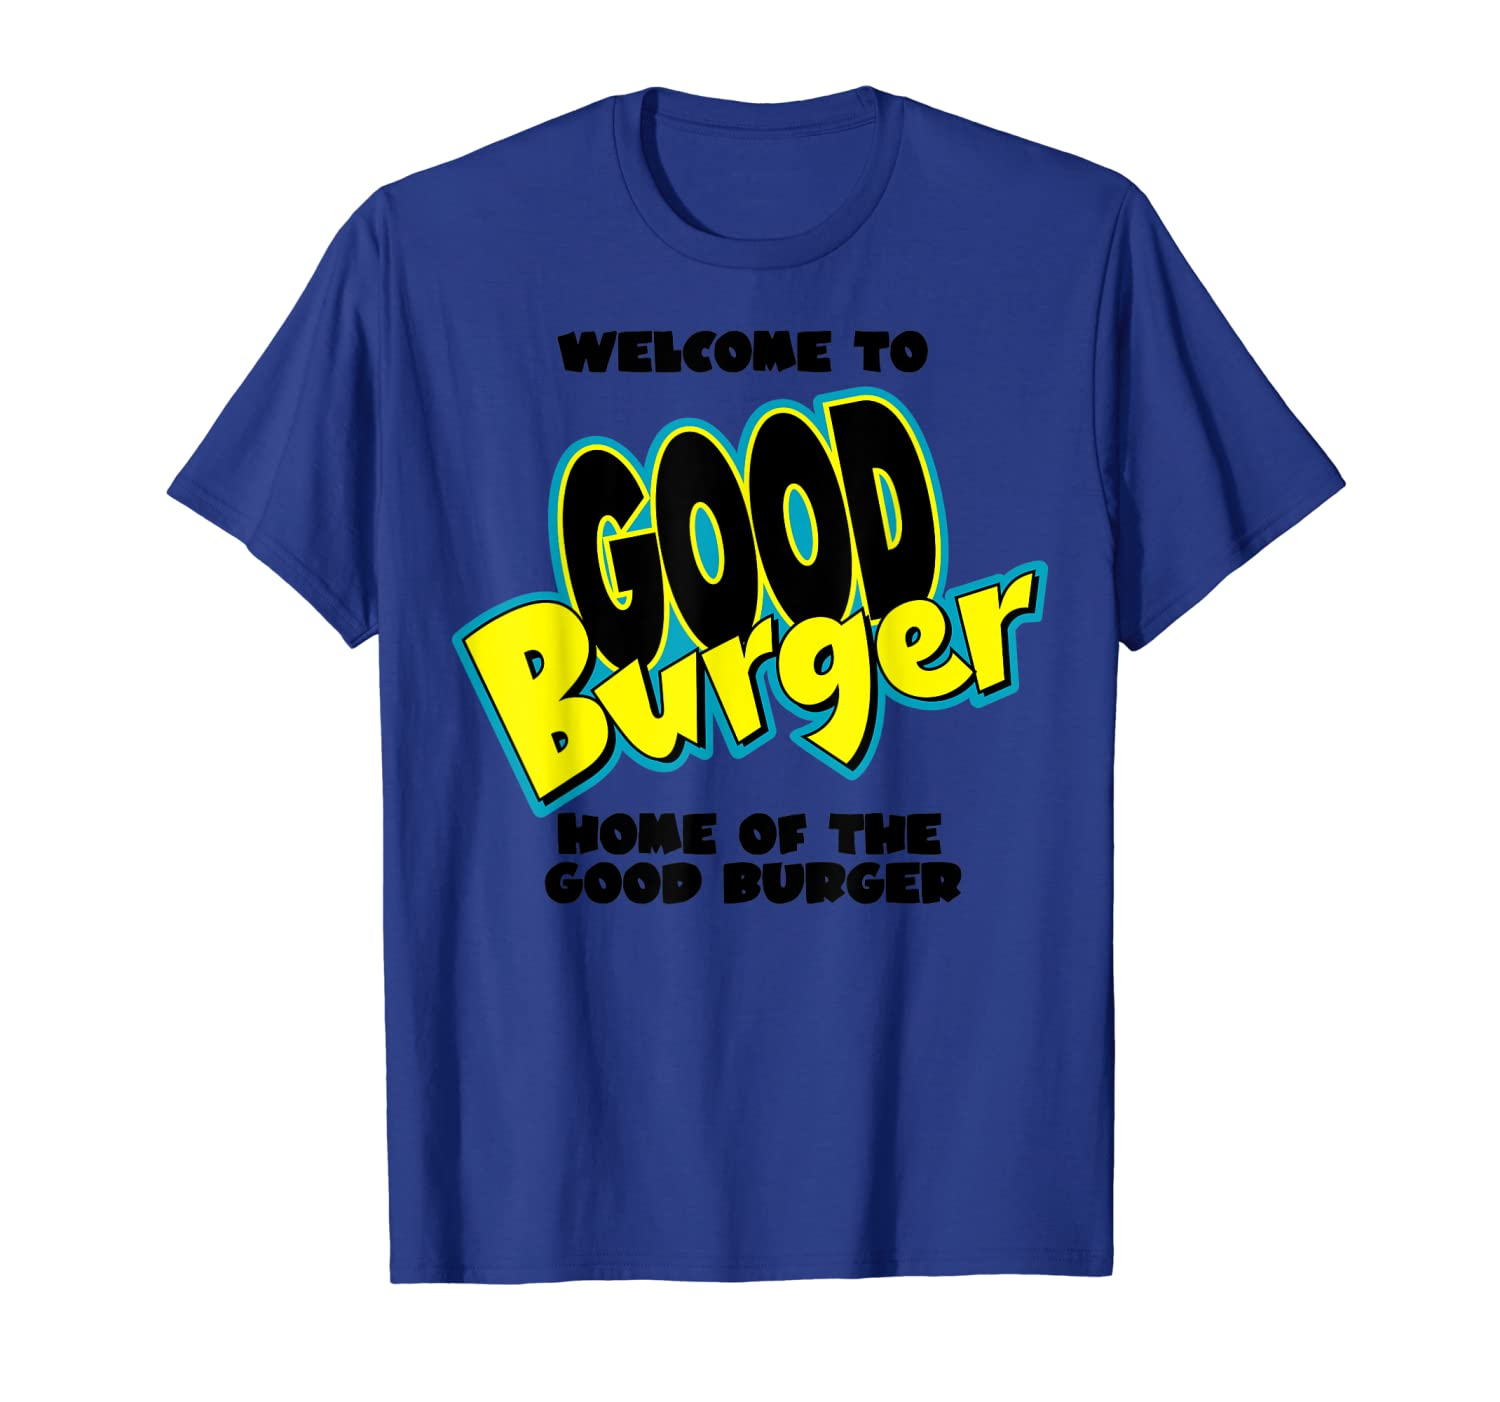 Nickelodeon Home of the Good Burger T-Shirt